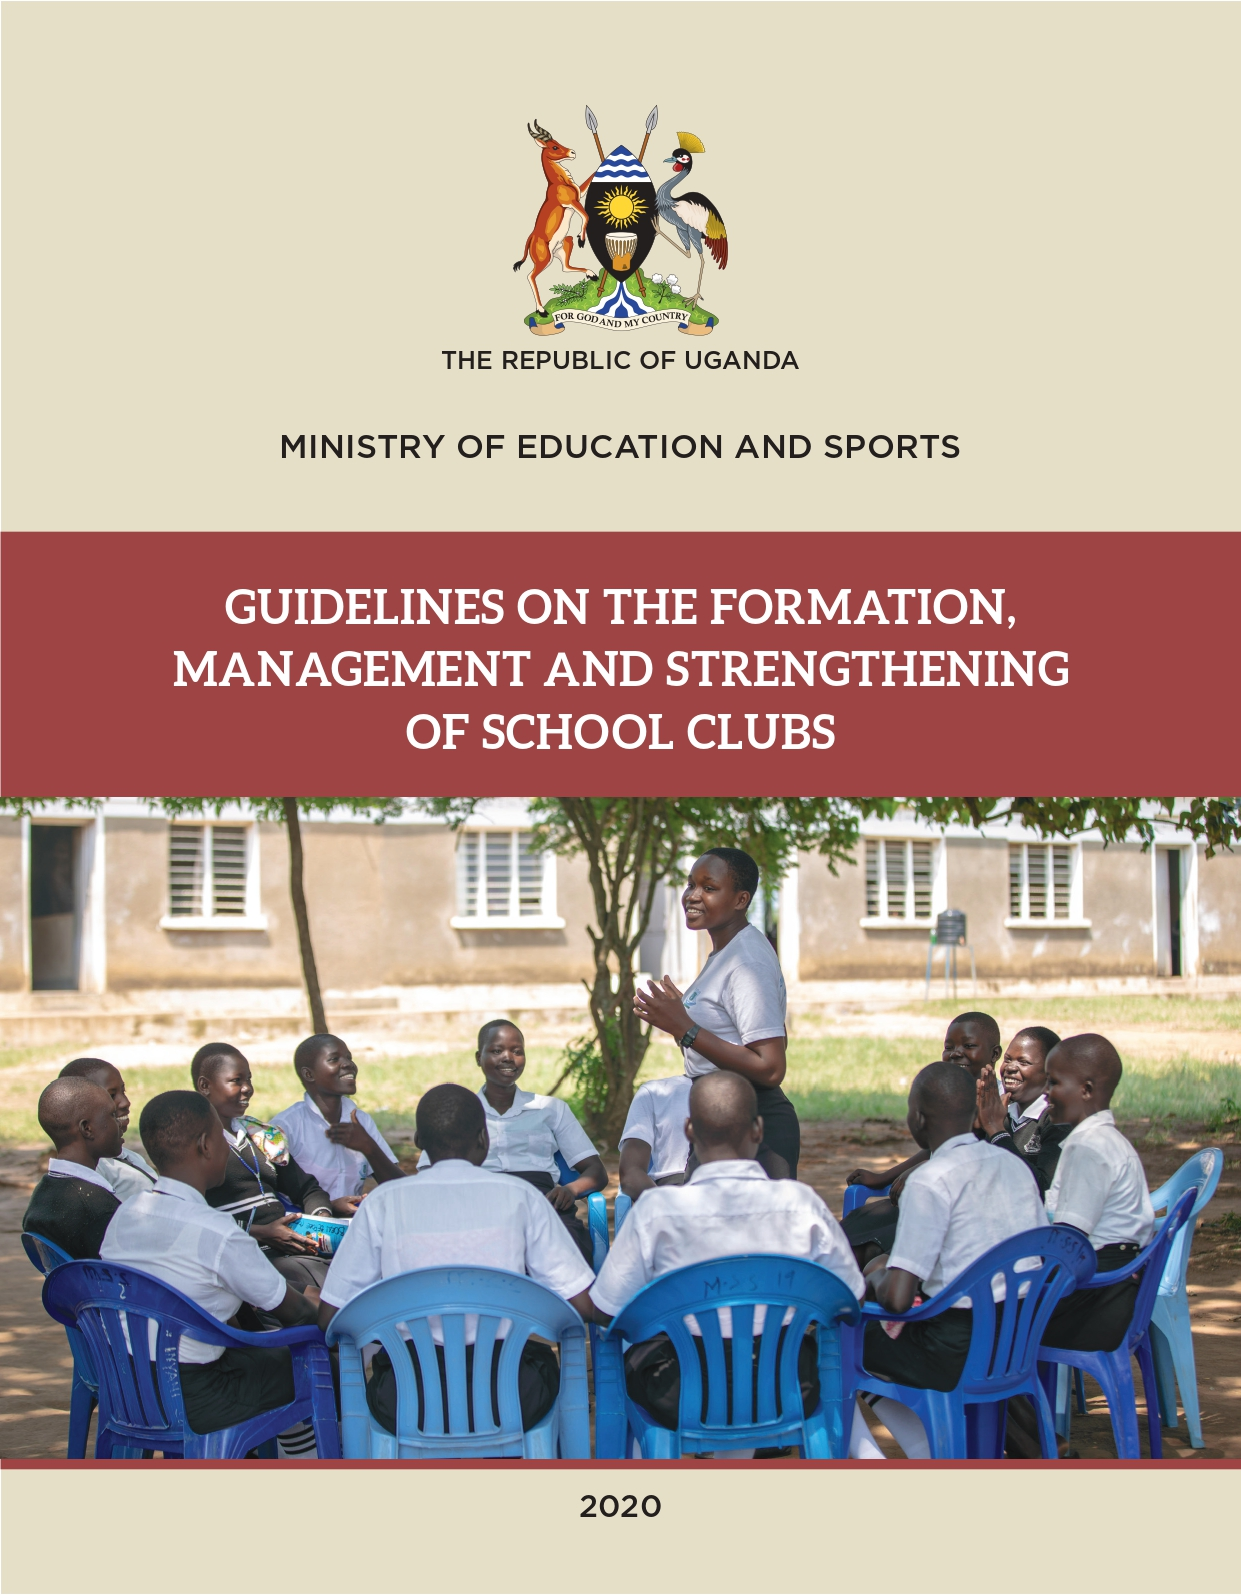 Guidelines on the Formation, Management and Strengthening of School Clubs